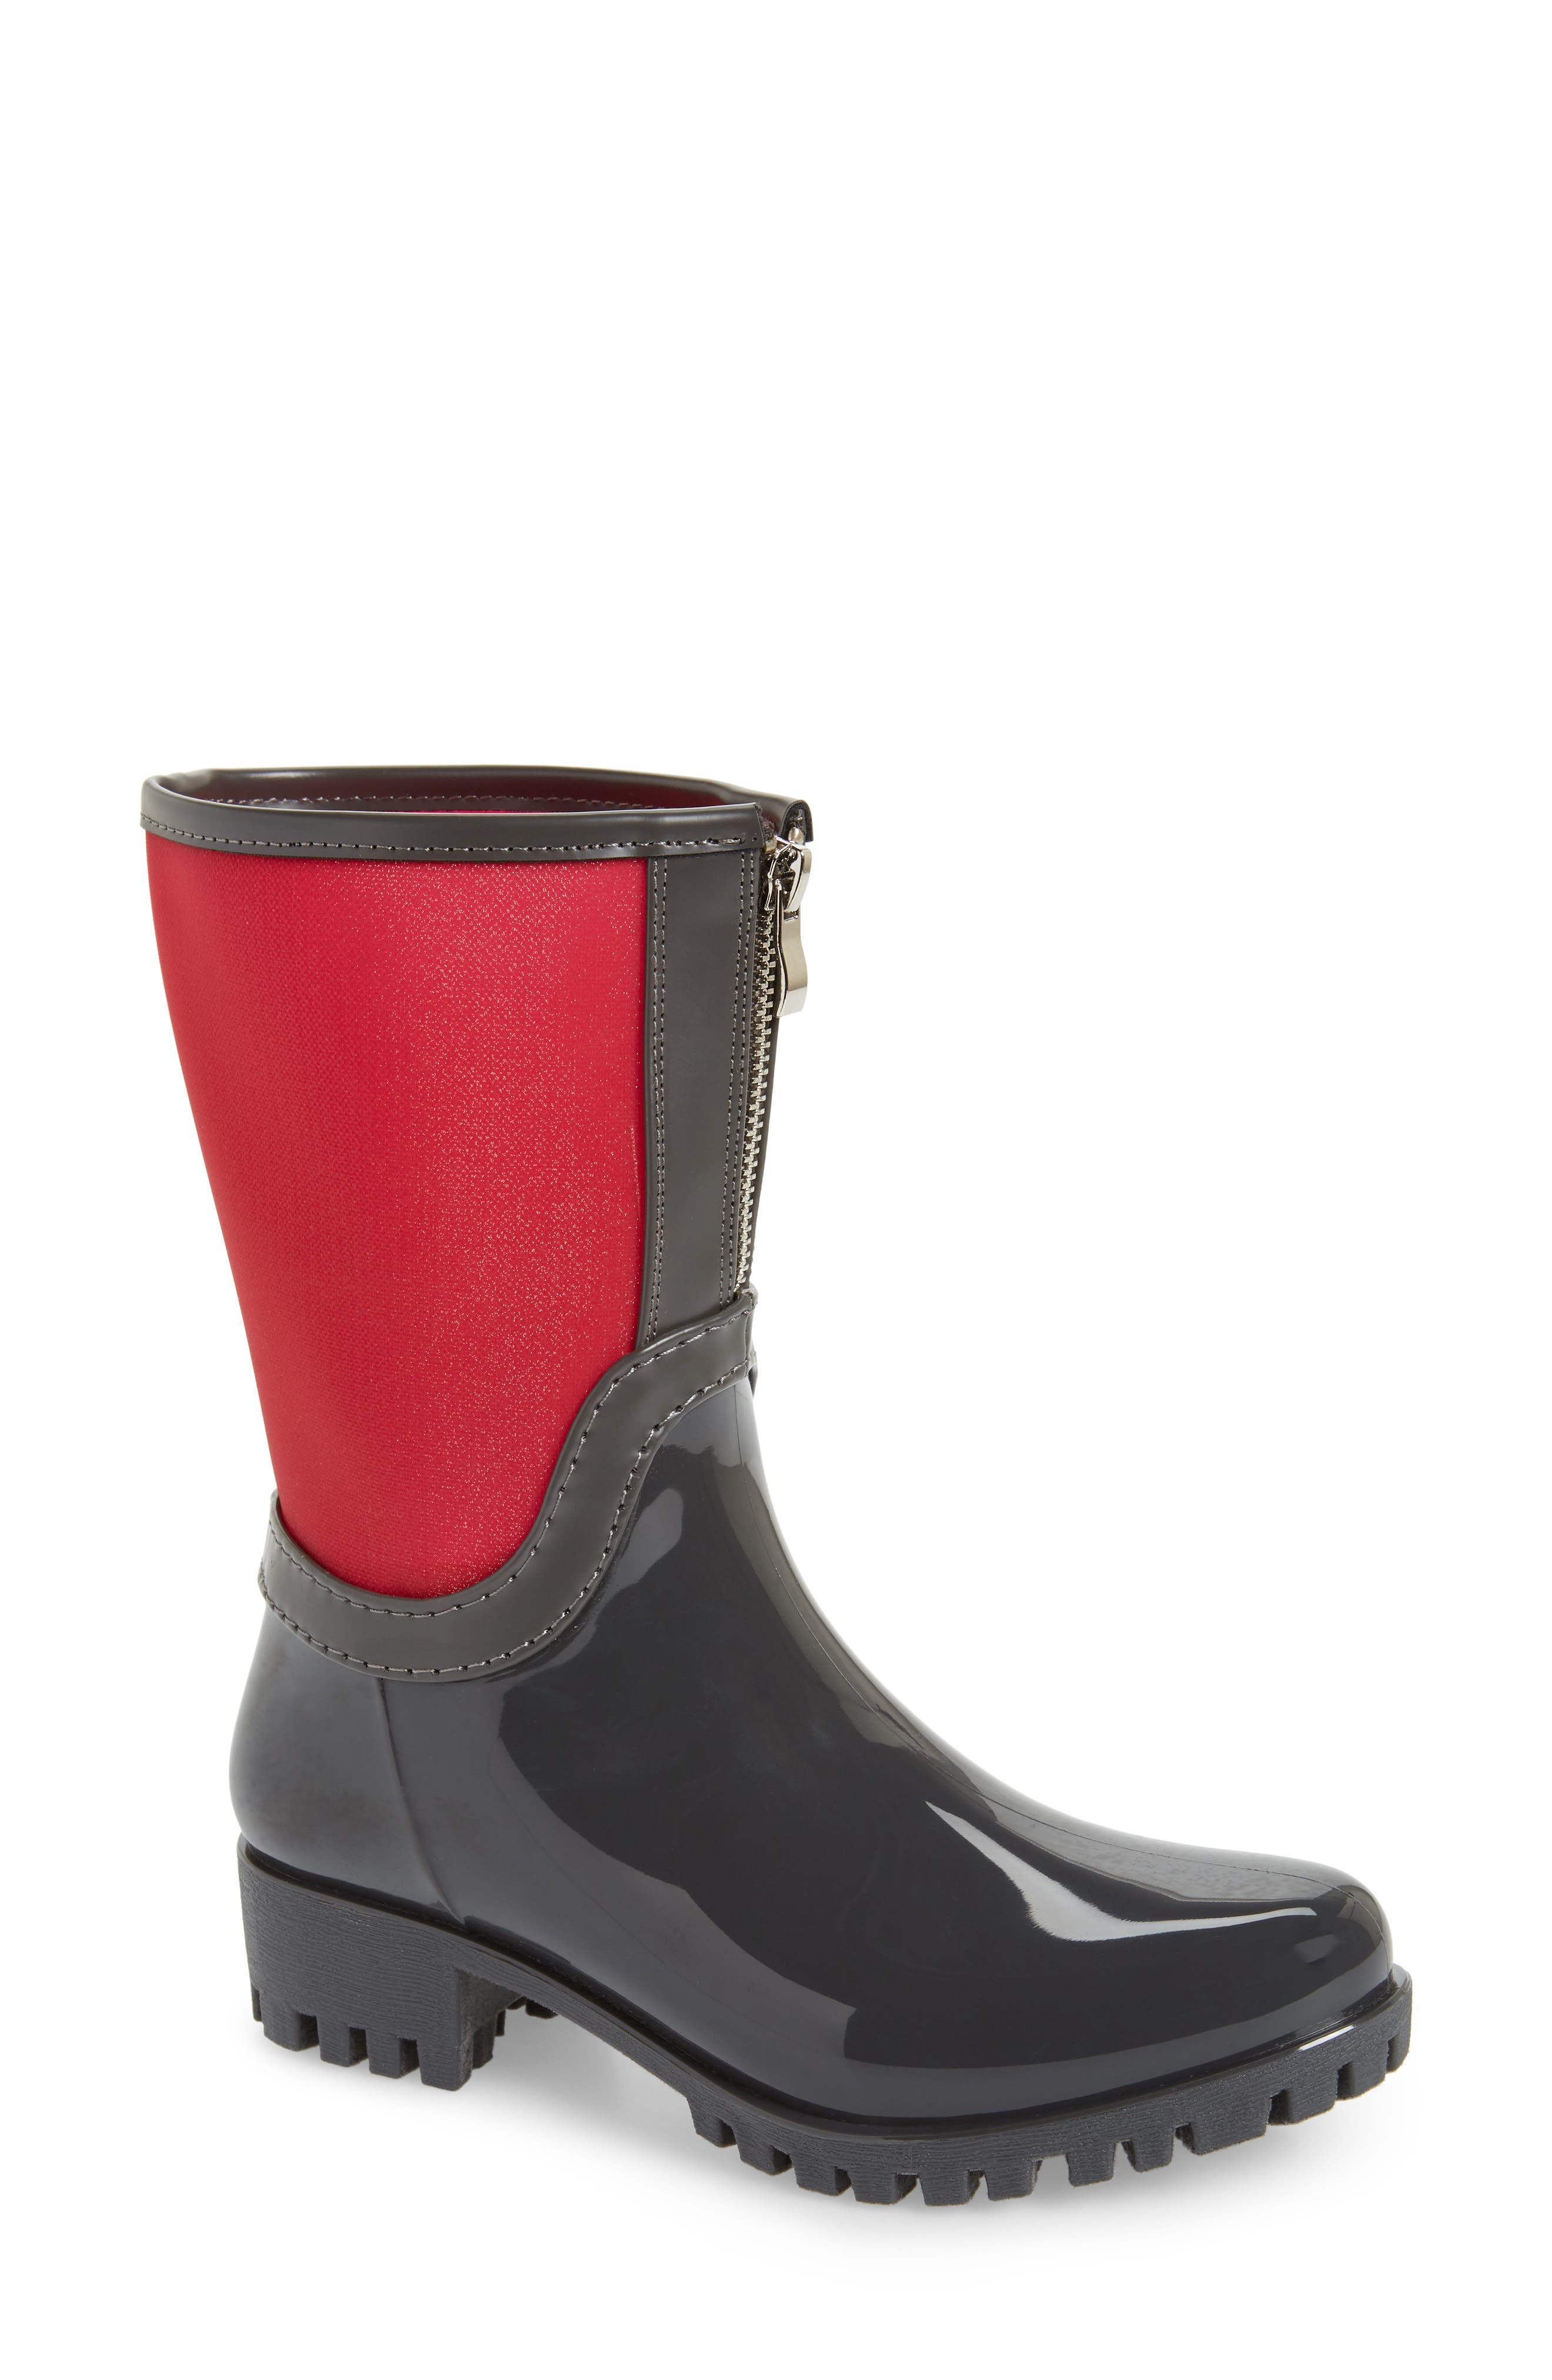 Dryden Sheer Waterproof Boot,                         Main,                         color, Berry Fabric